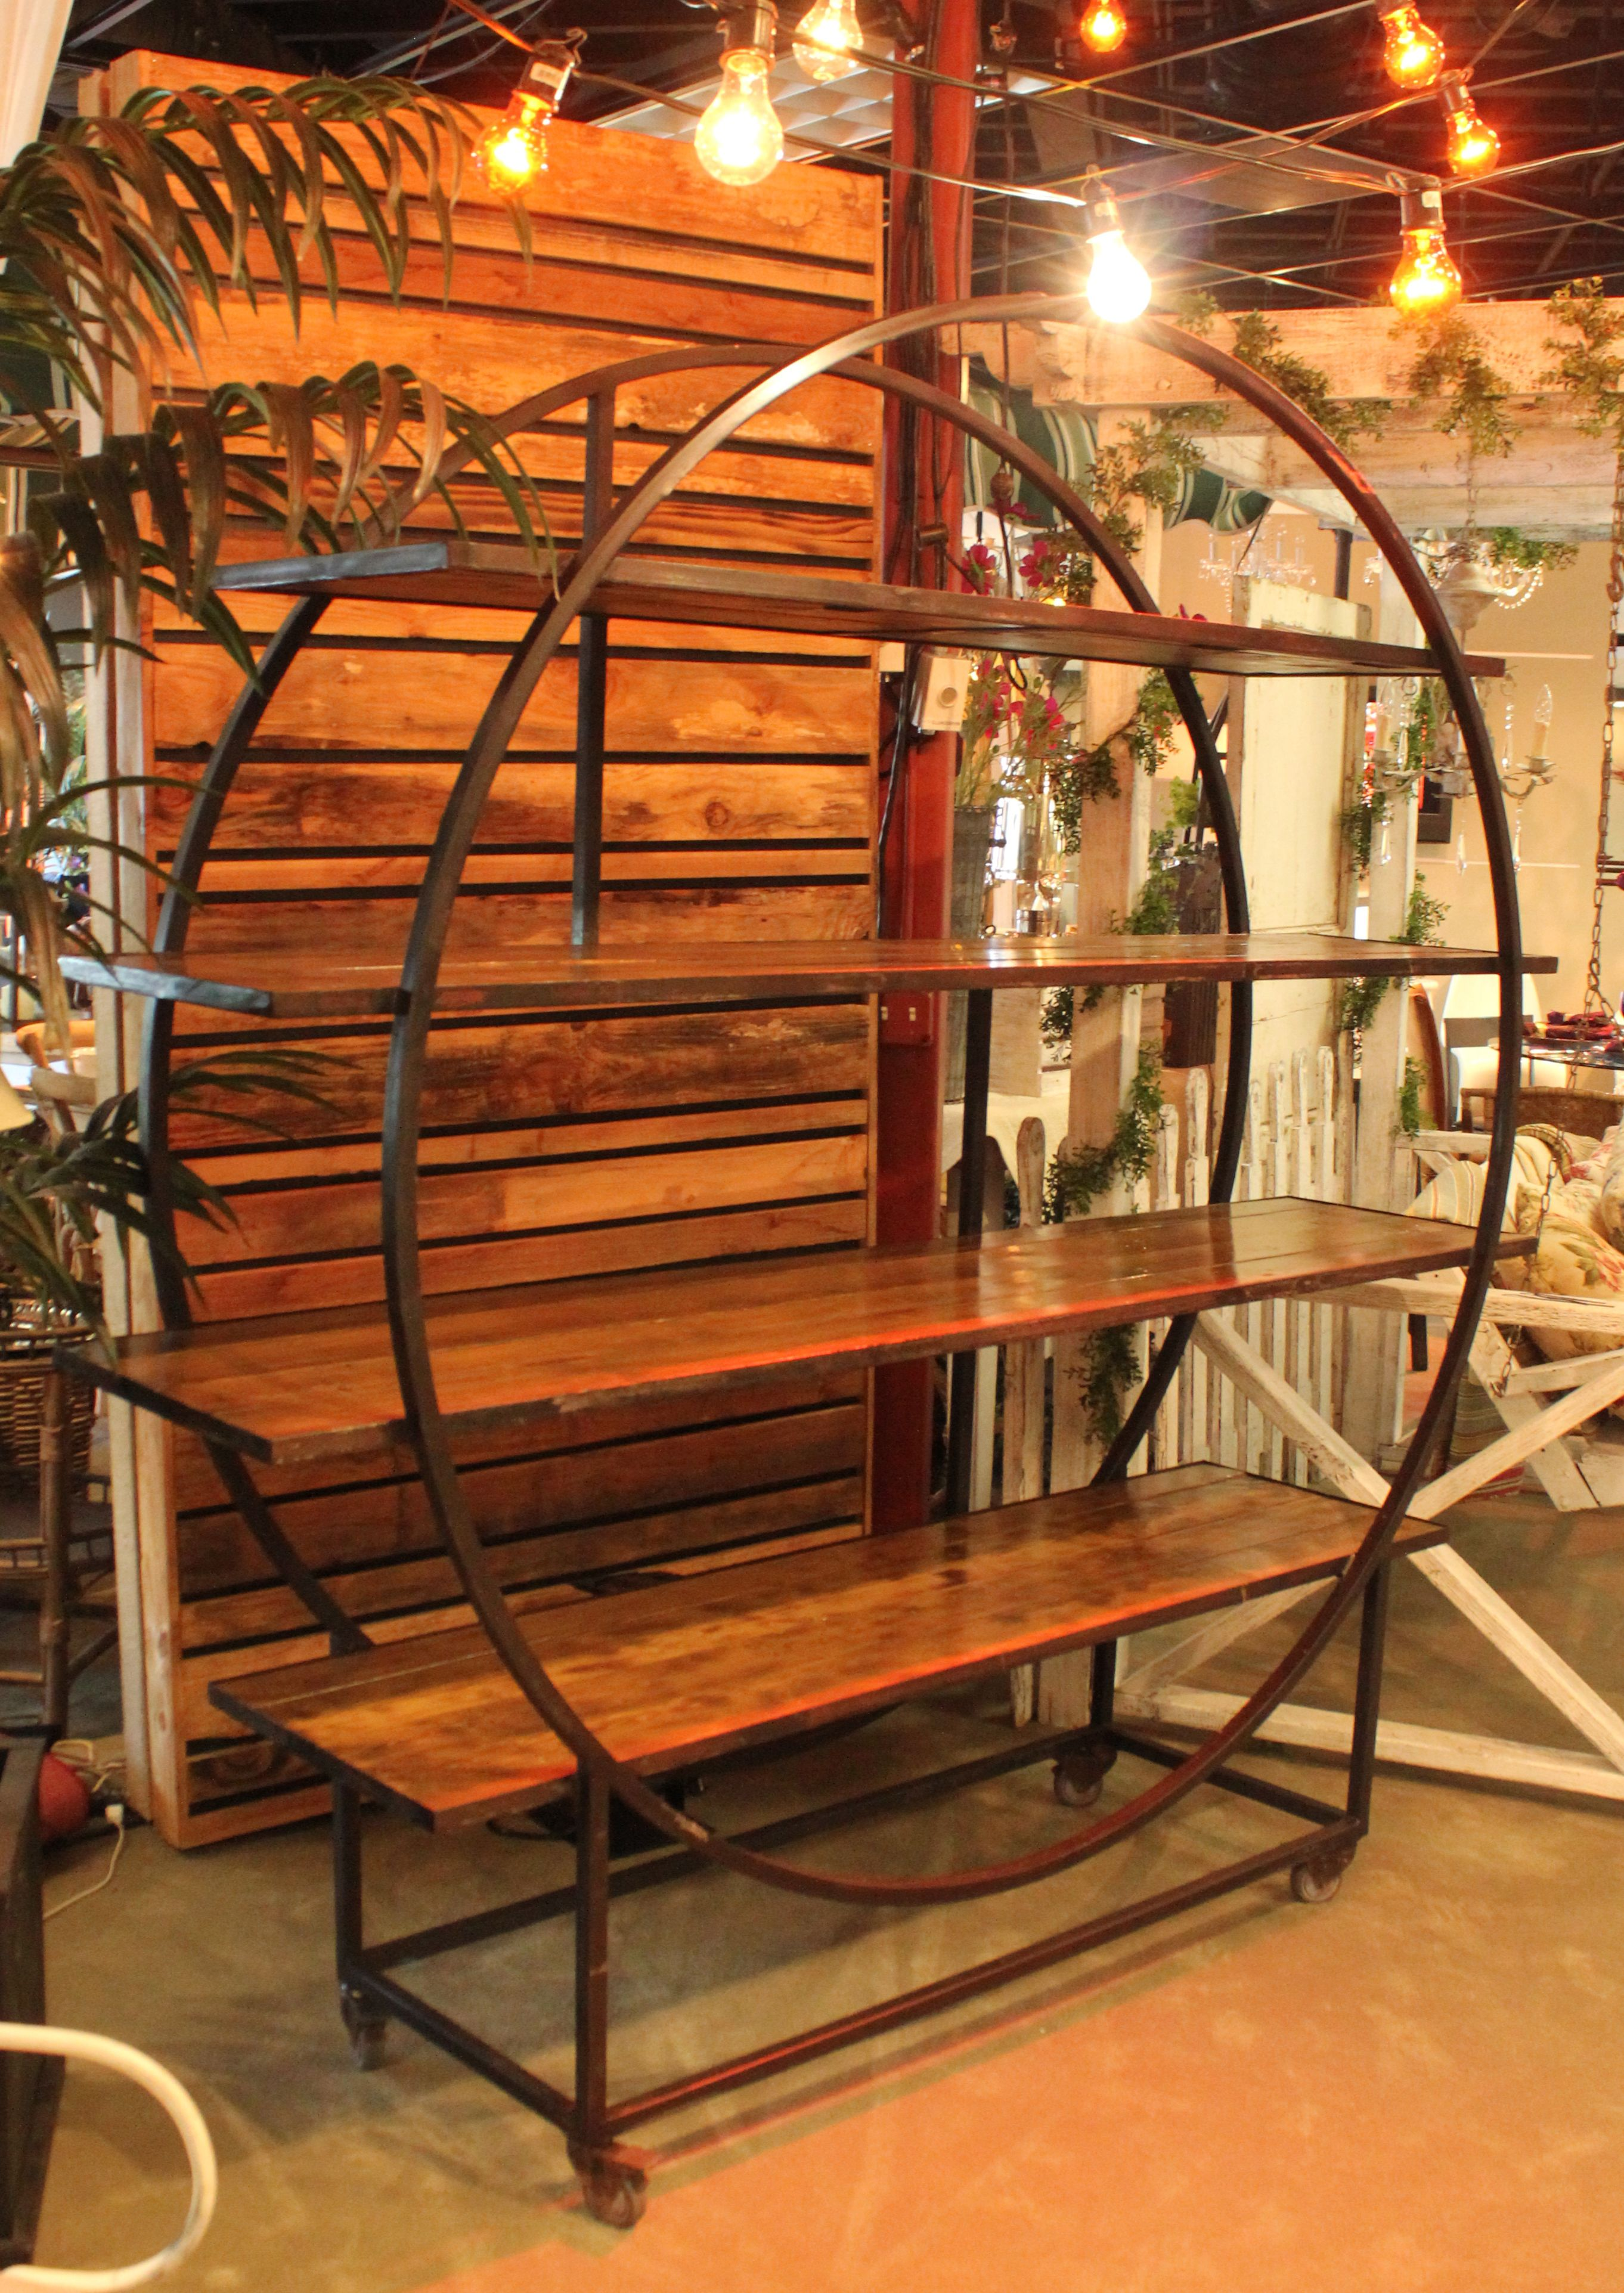 Edison 6\' Circular Back Bar with Wood Shelves | Town & Country Event ...